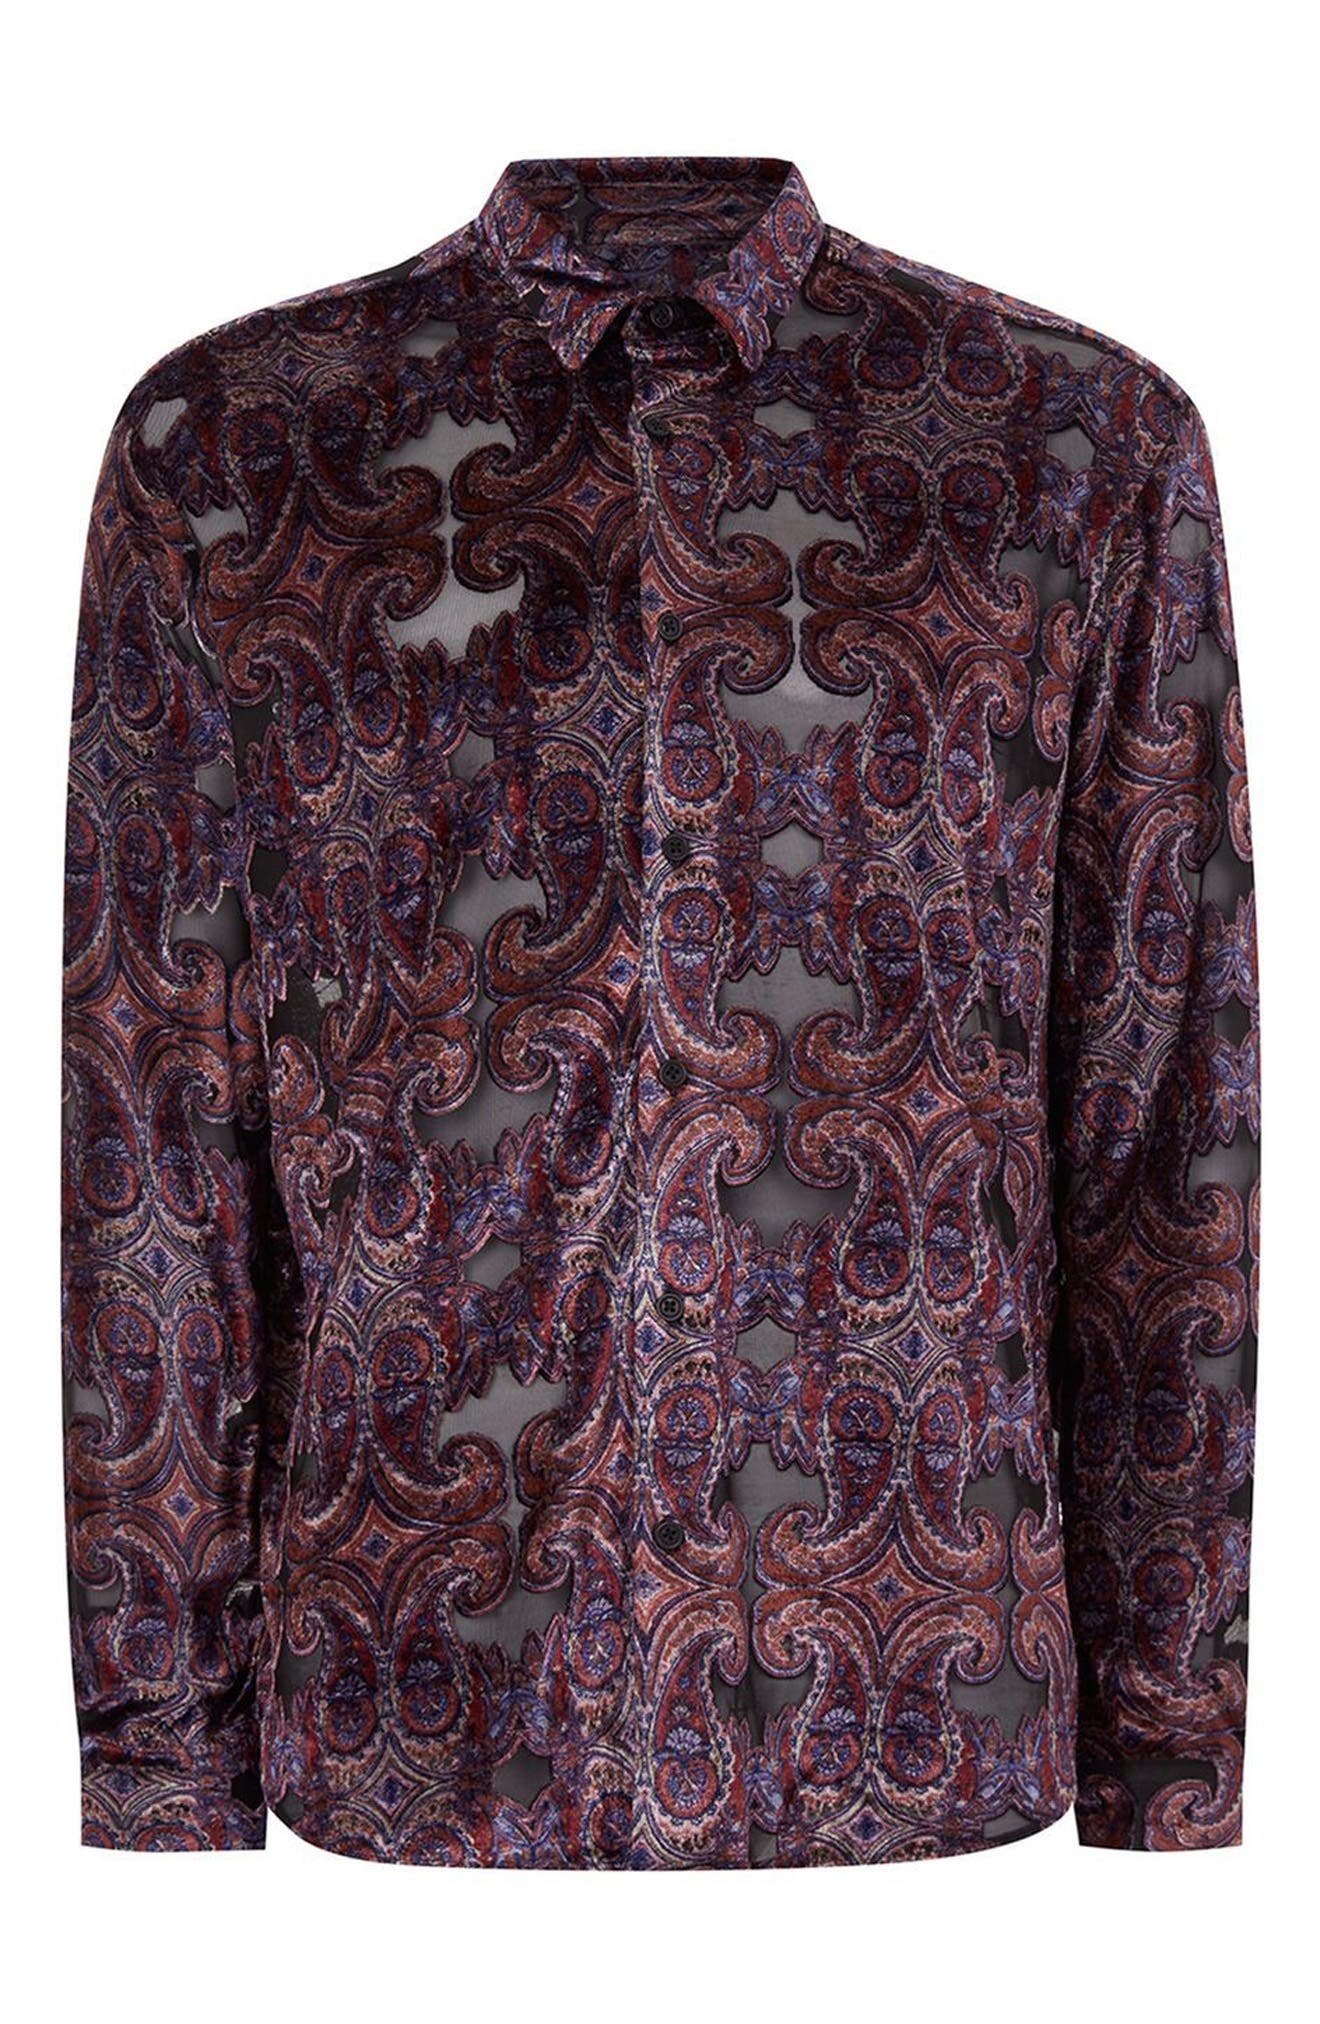 Paisley Classic Fit Shirt,                             Alternate thumbnail 4, color,                             501